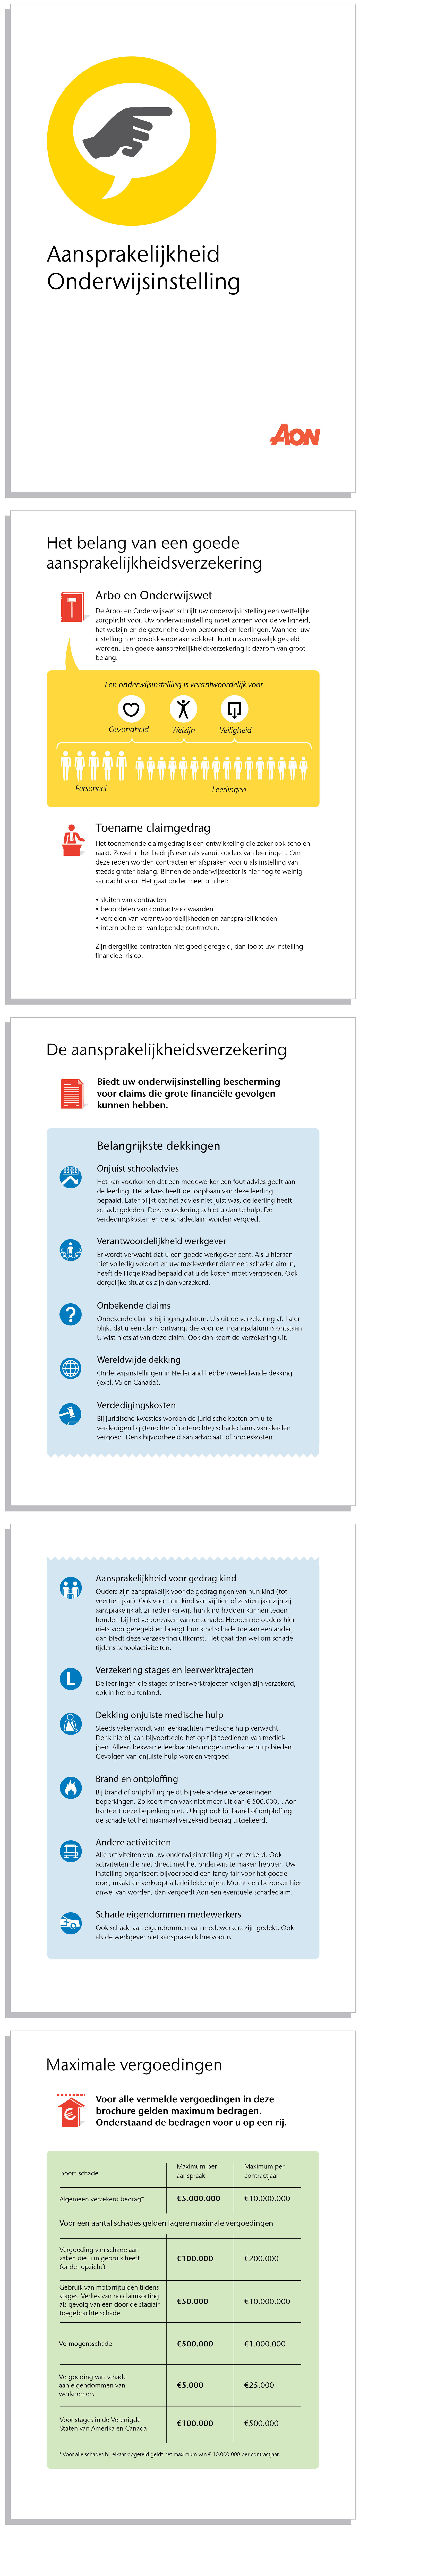 infographics, brochures & pictogrammen website aon verzekeringen